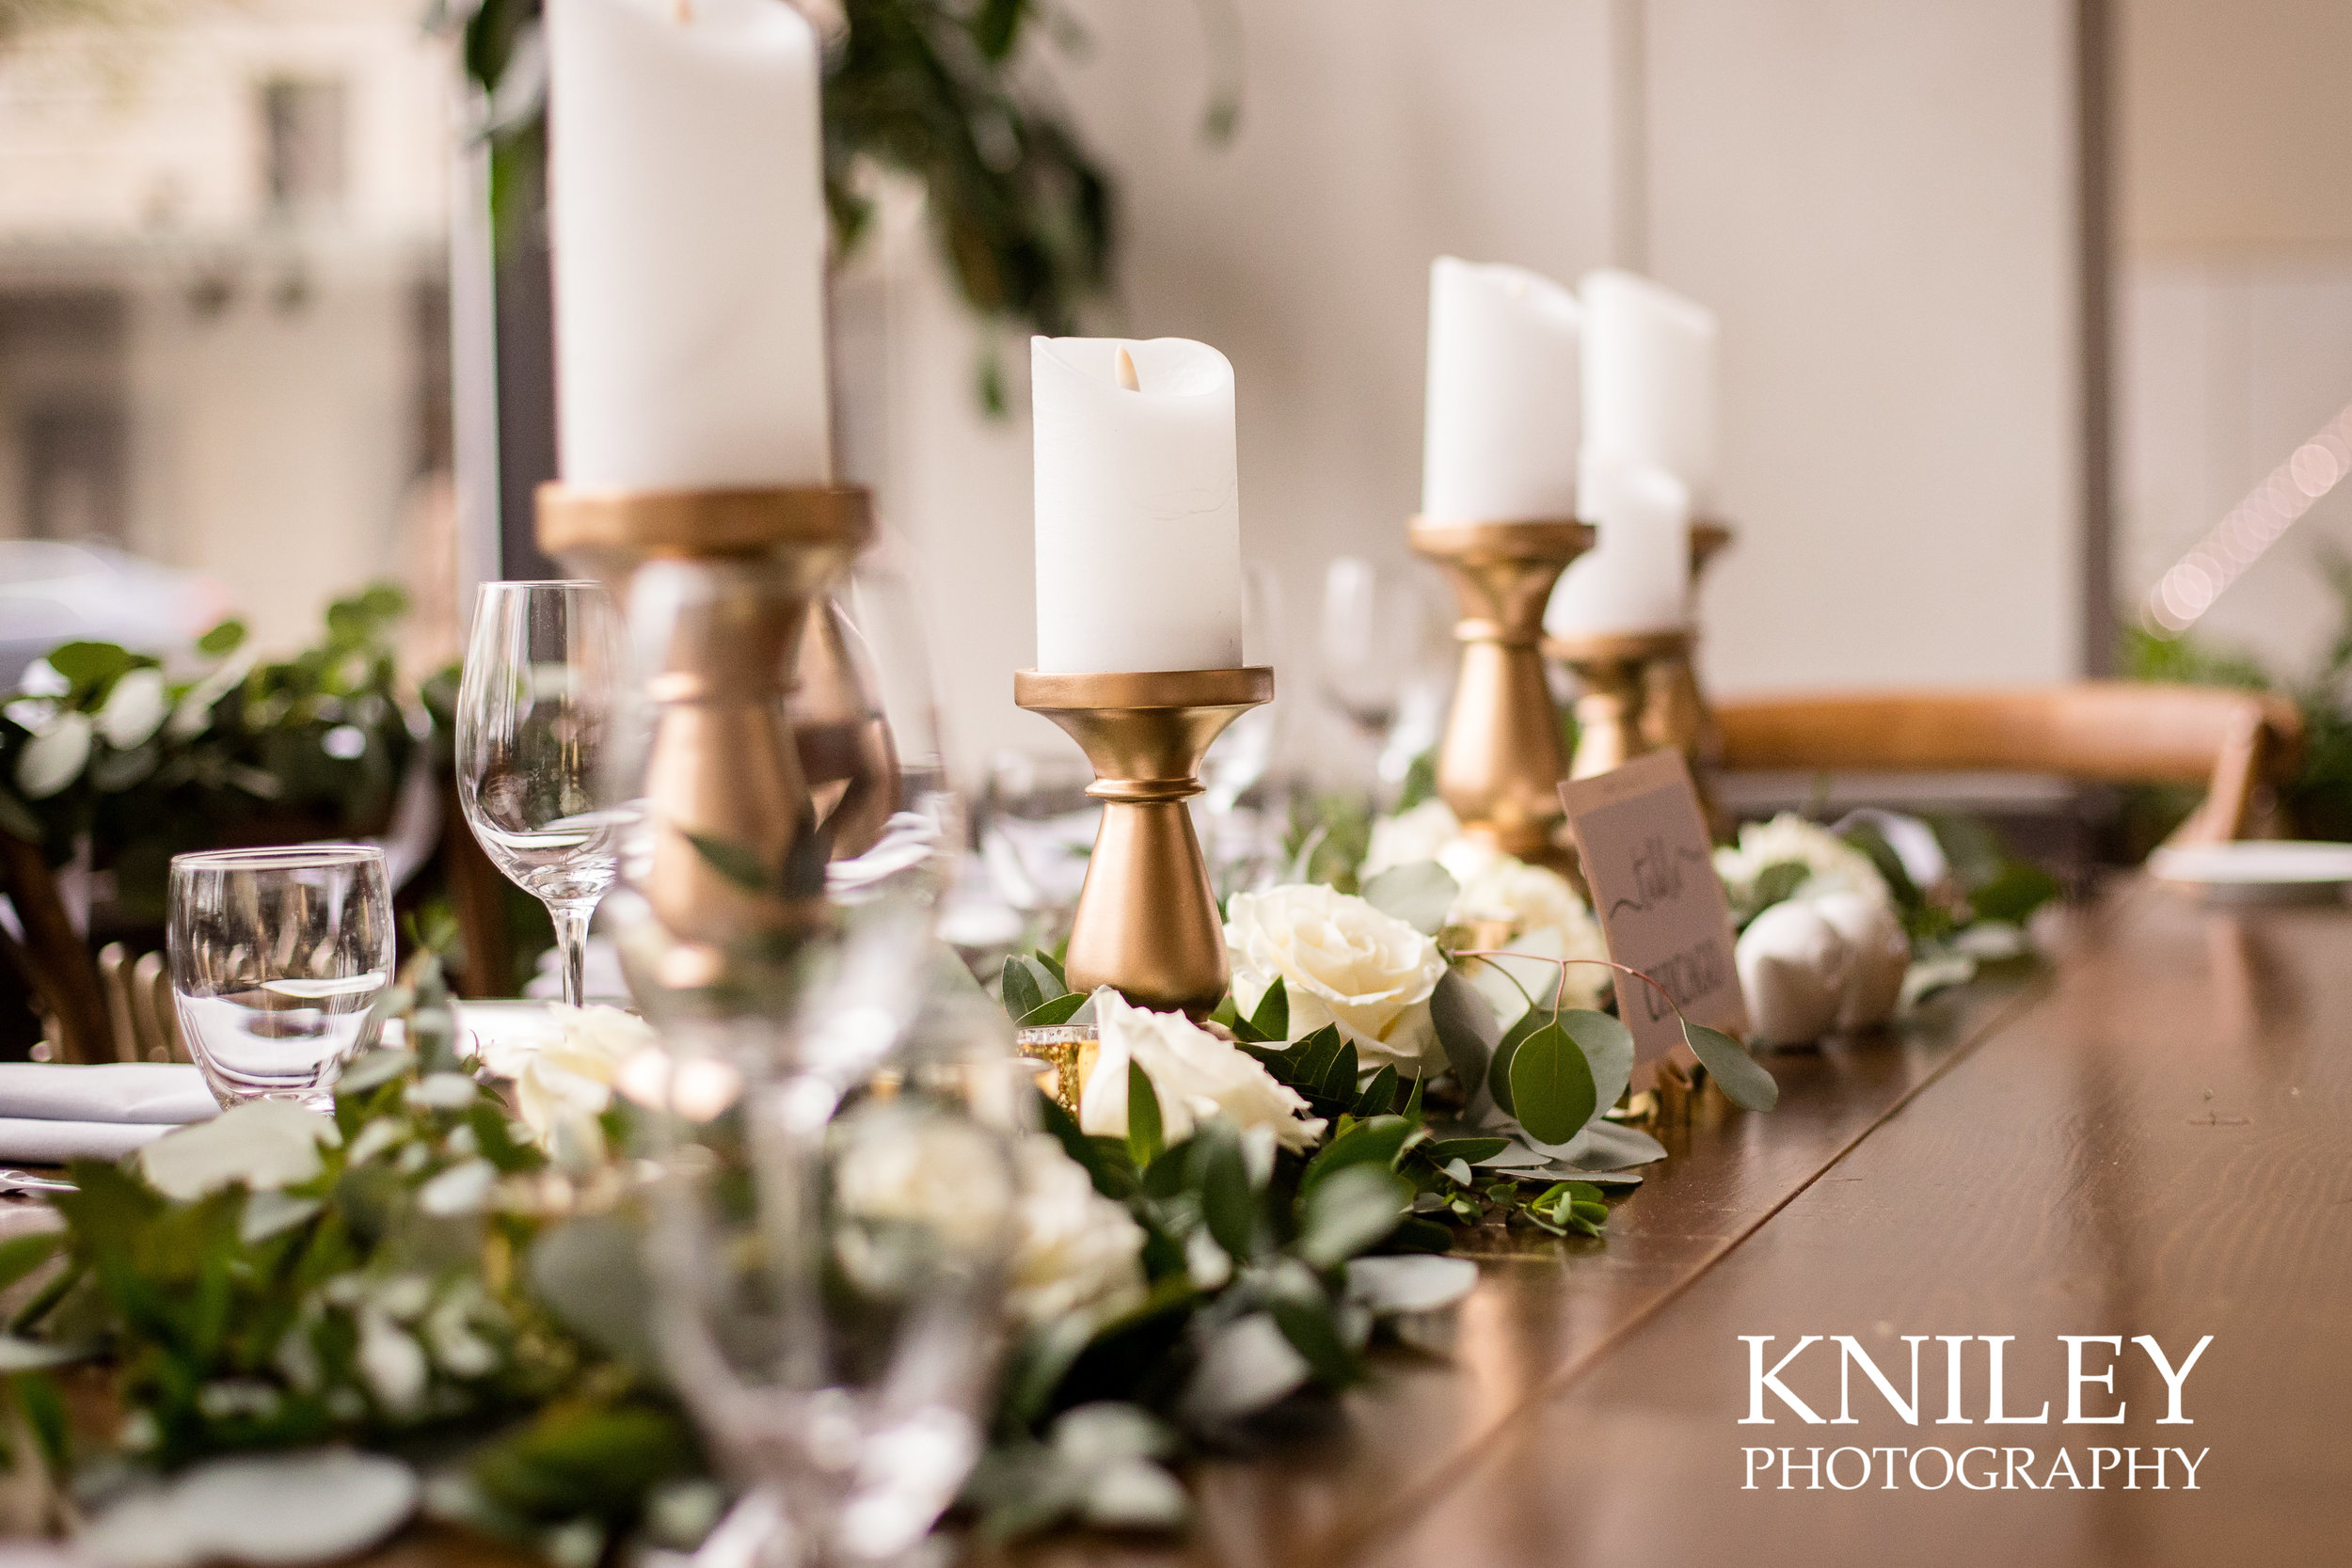 003-Kniley-Photography-I-Do-Wedding-Flowers-Wedding-Floral-Picture-003-IMG_0026.jpg